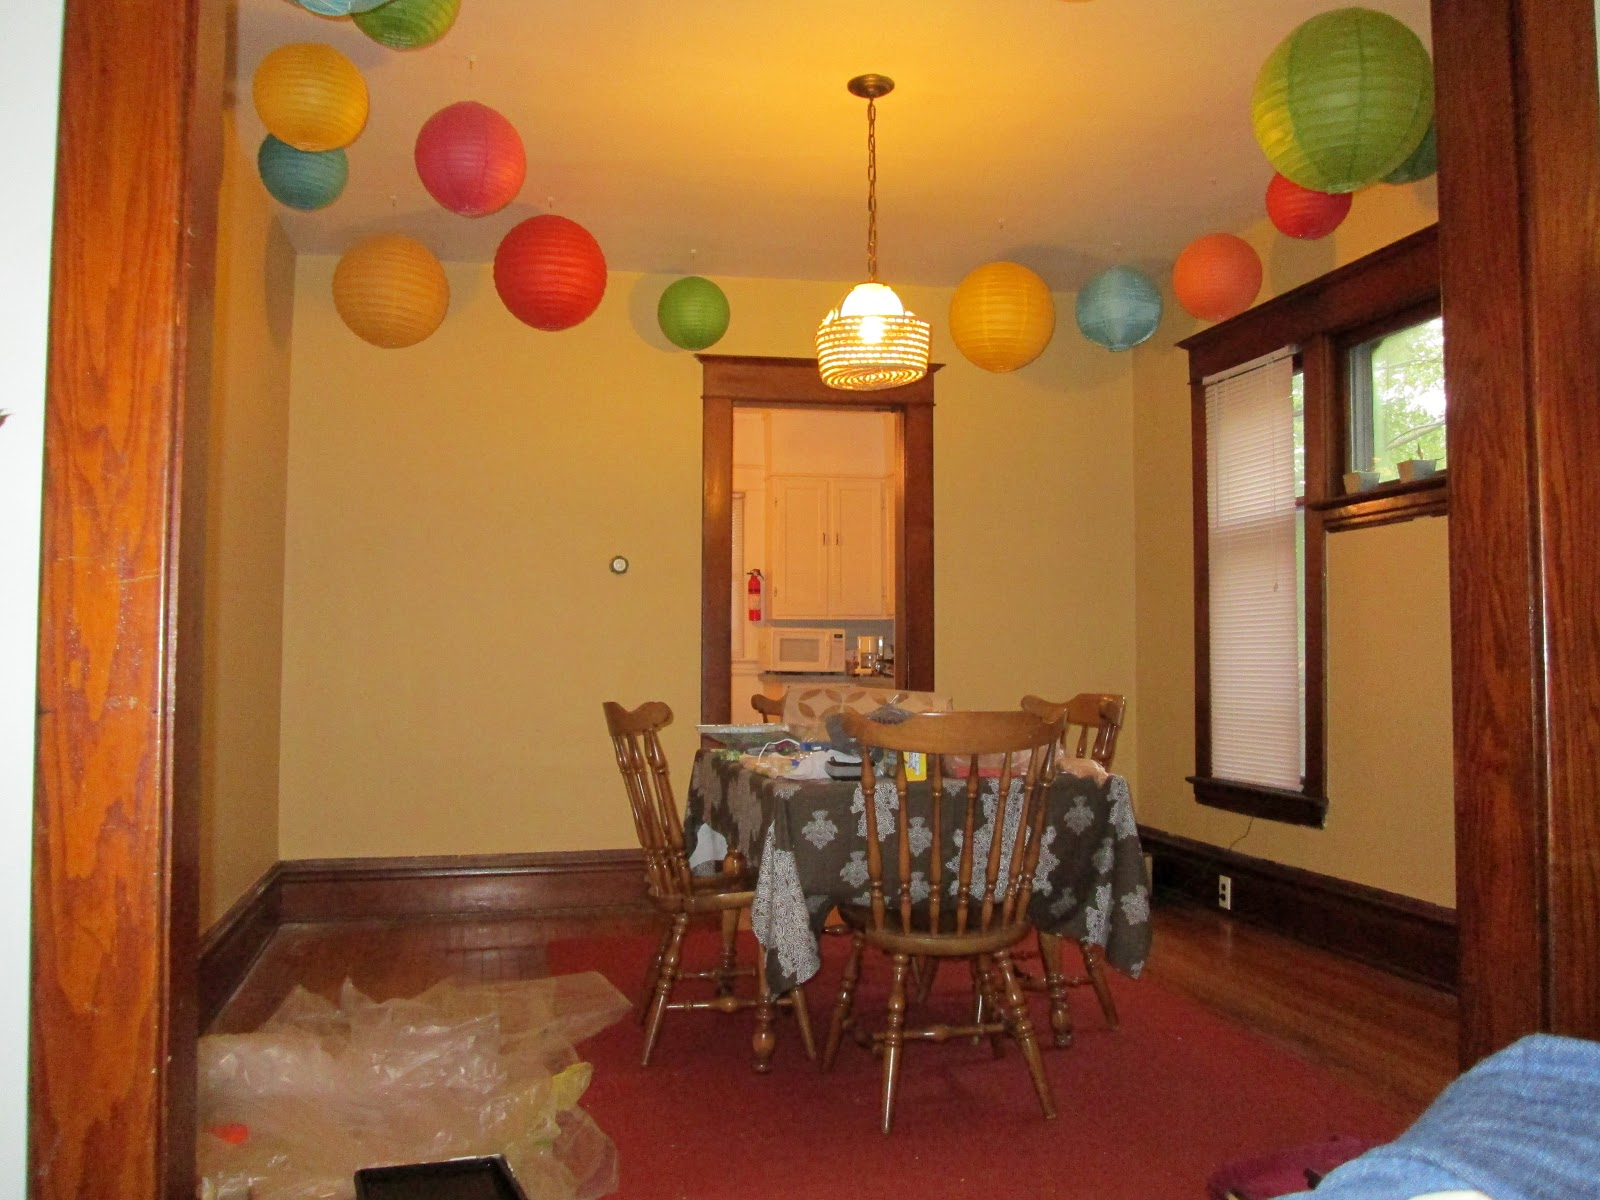 Cozy Dining Space: Making Home From Scratch: Interrogation Room To Cozy